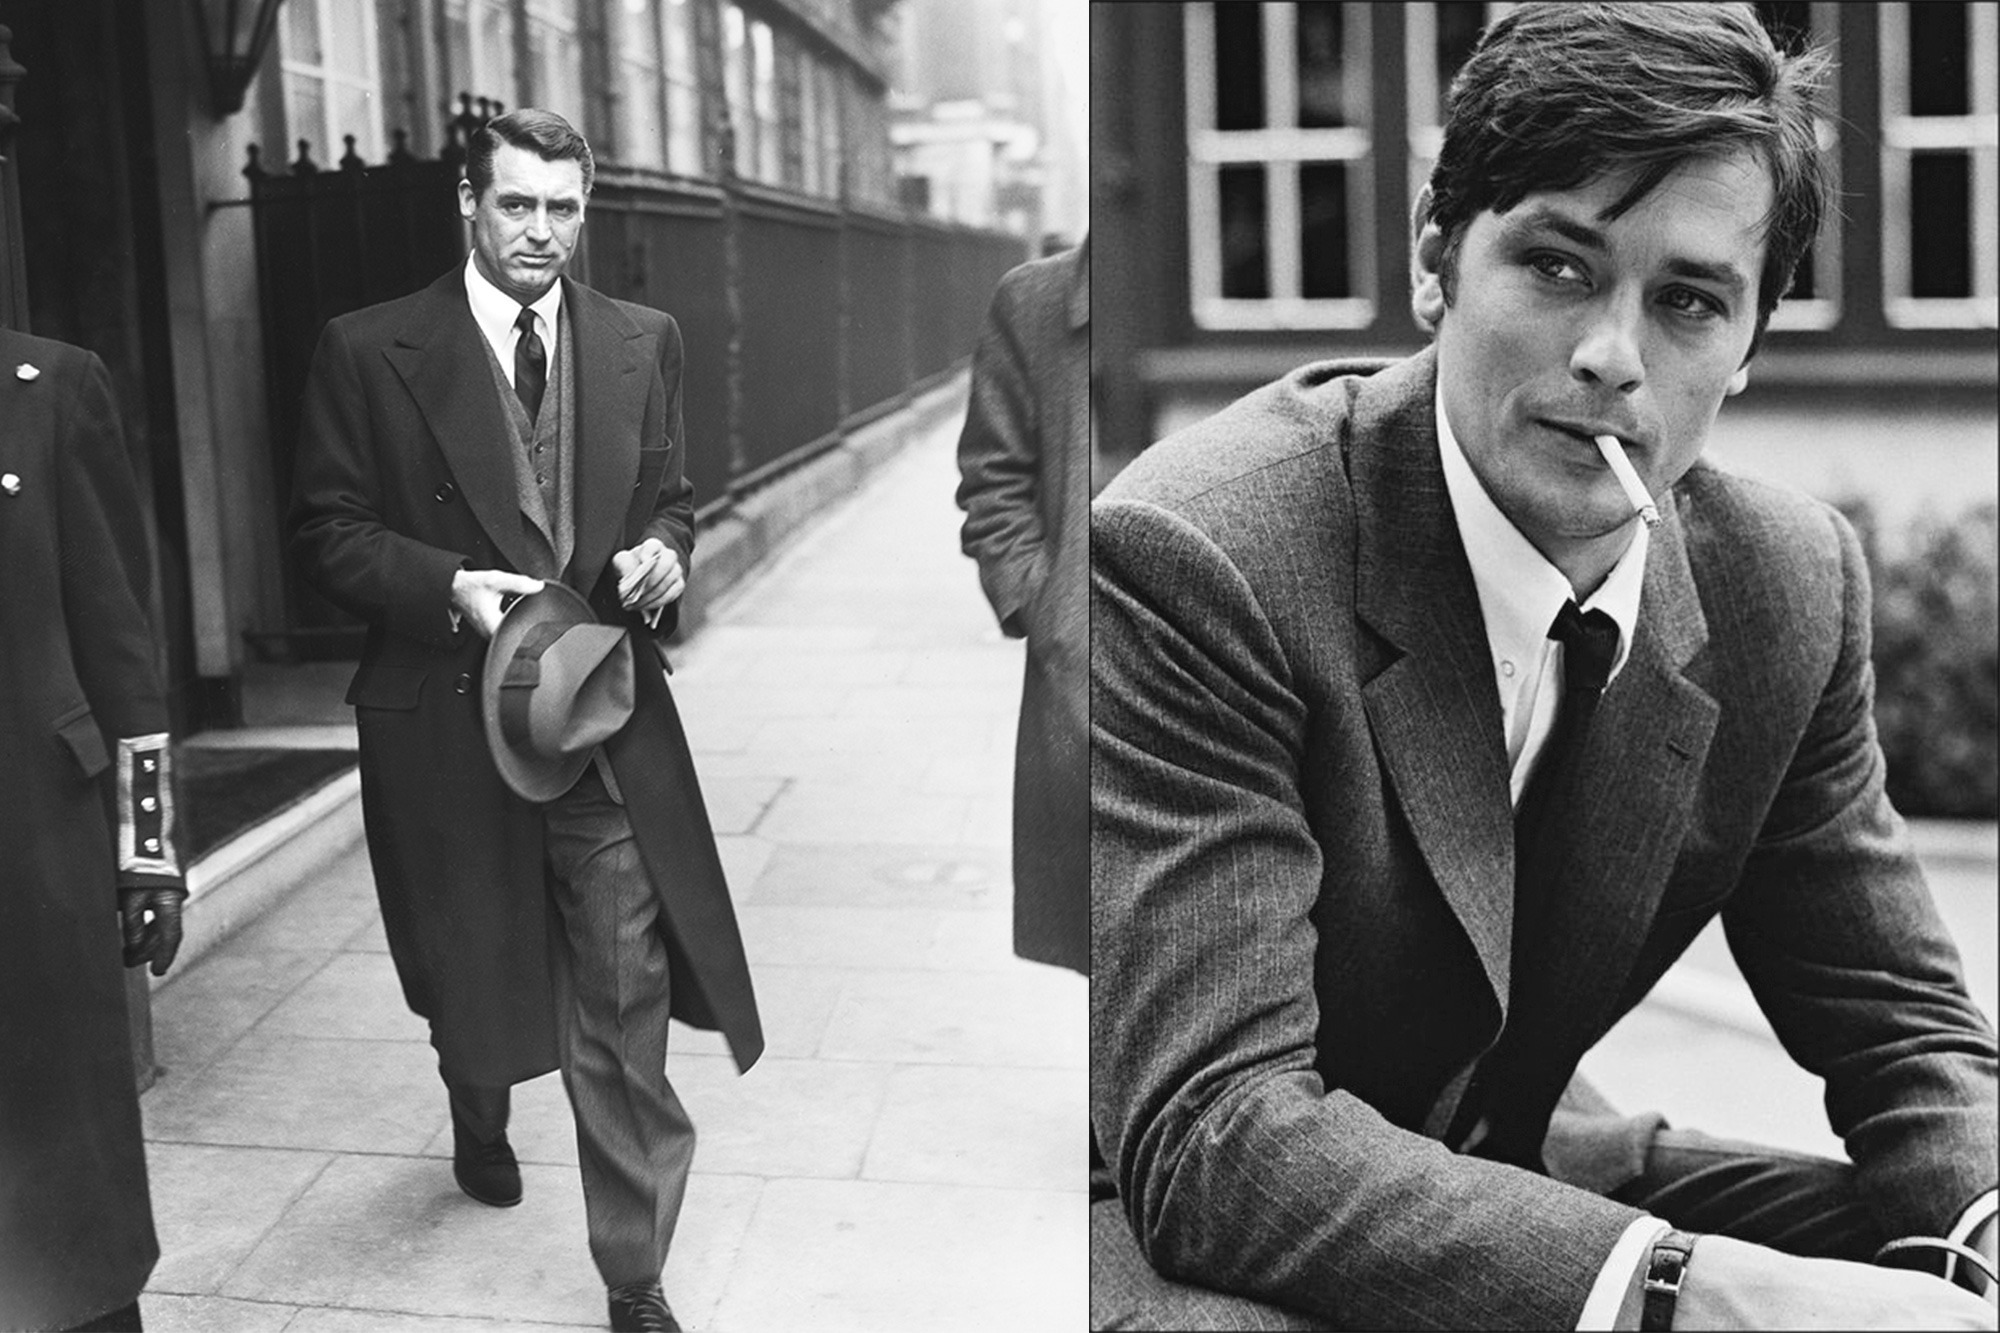 Icones de style Husbands - Cary Grant et Alain Delon